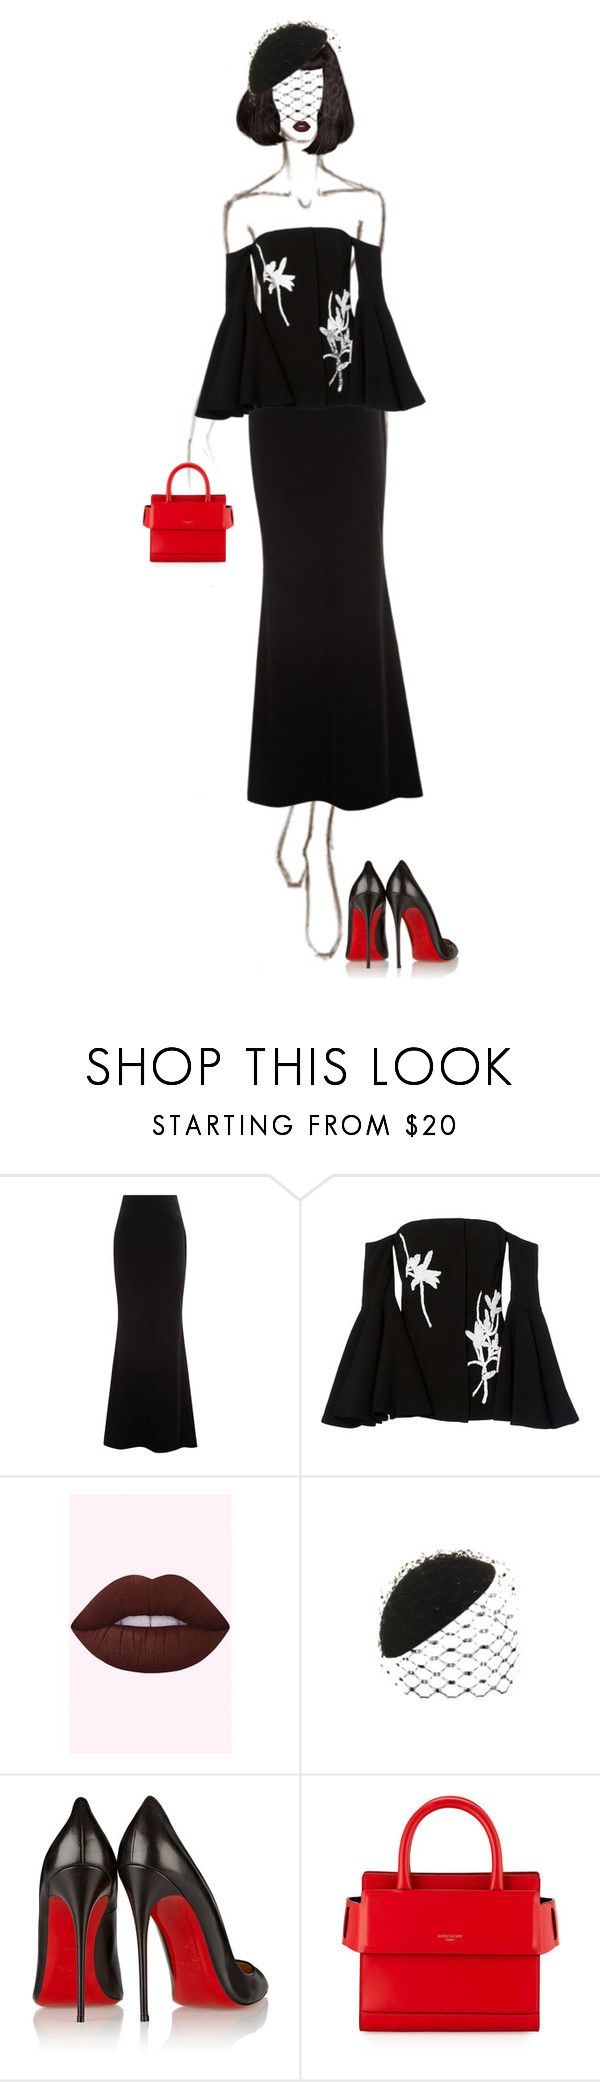 """""""Black Widow 🕷"""" by ladygagafashion ❤ liked on Polyvore featuring Talbot Runhof, SemSem, Philip Treacy, Christian Louboutin and Givenchy"""